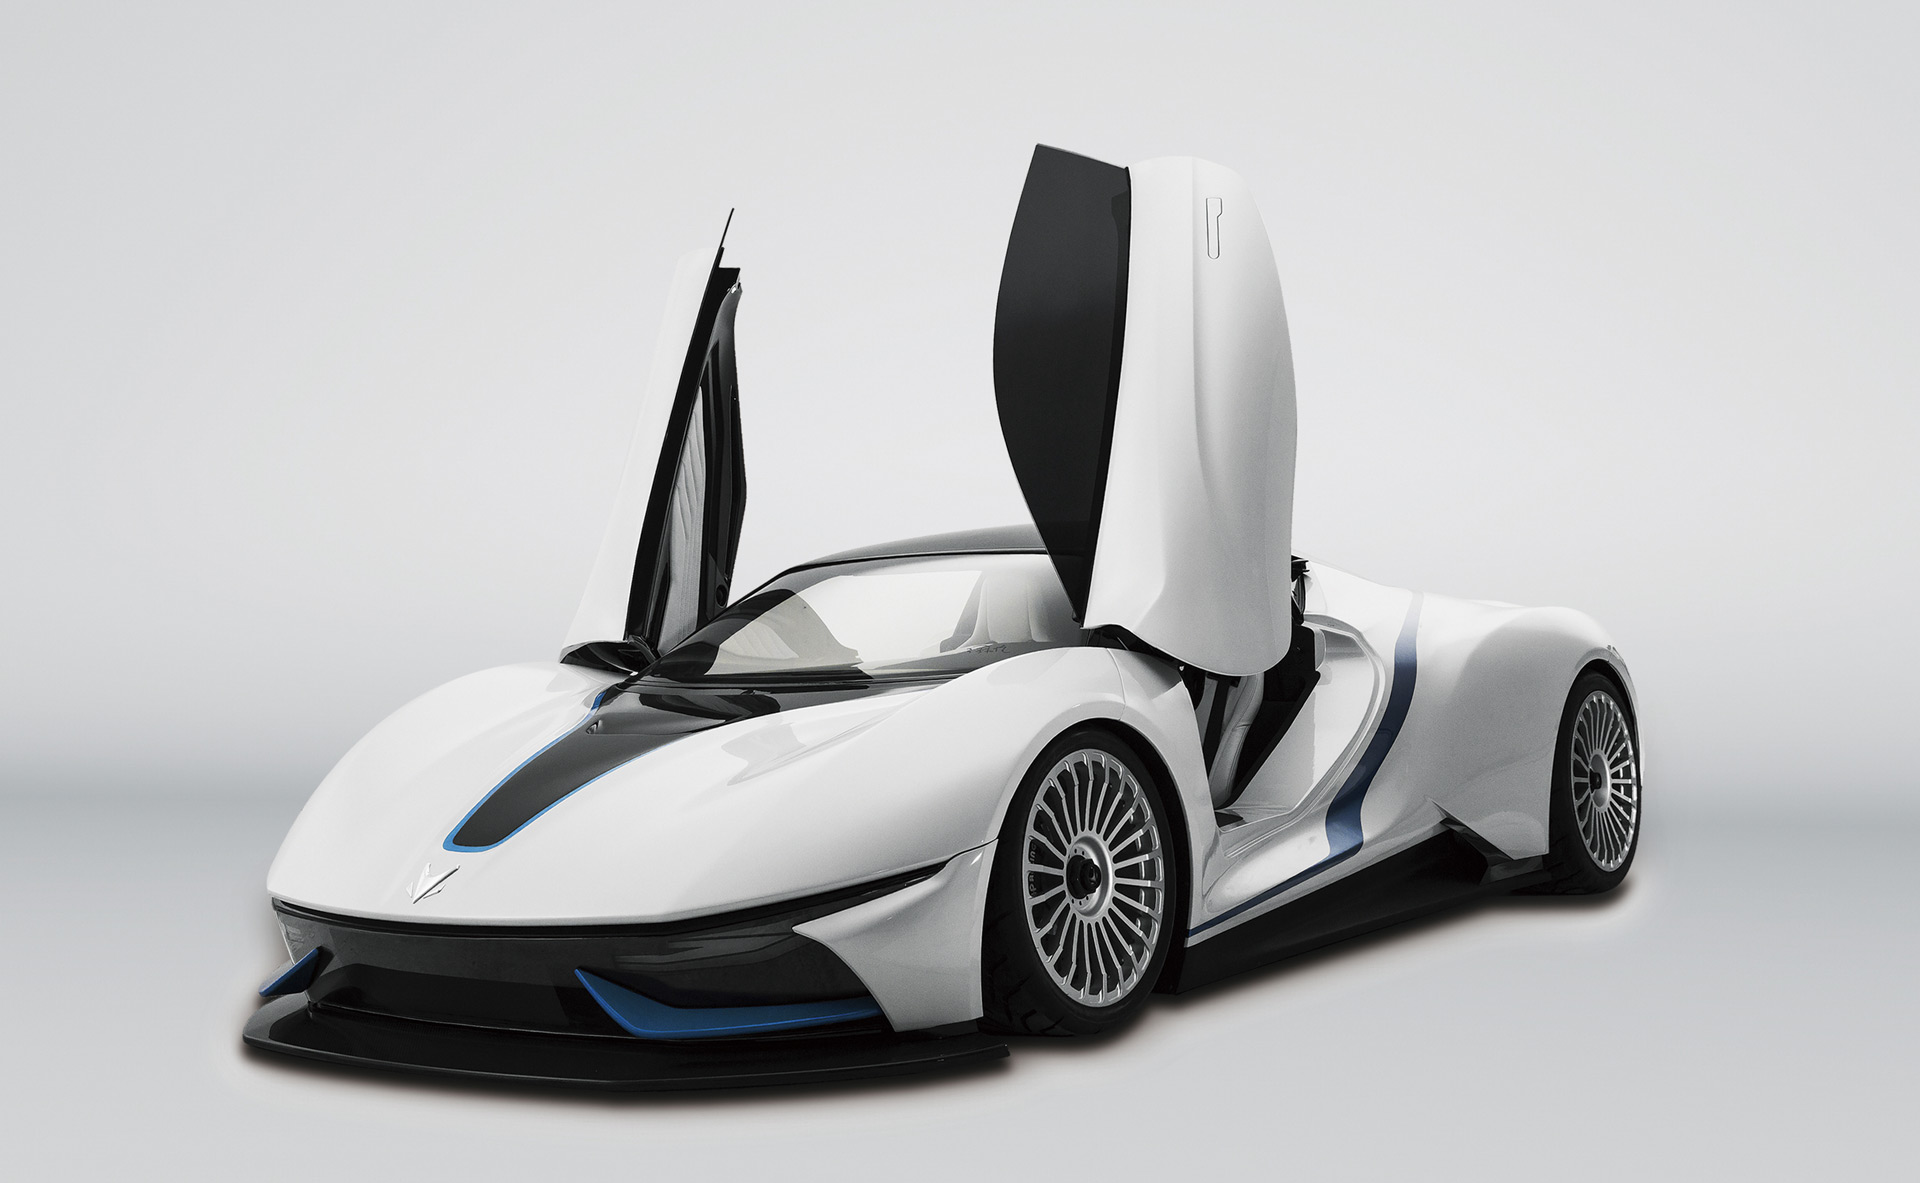 Walter De Silva To Design Cars For Chinese EV Startup Arcfox